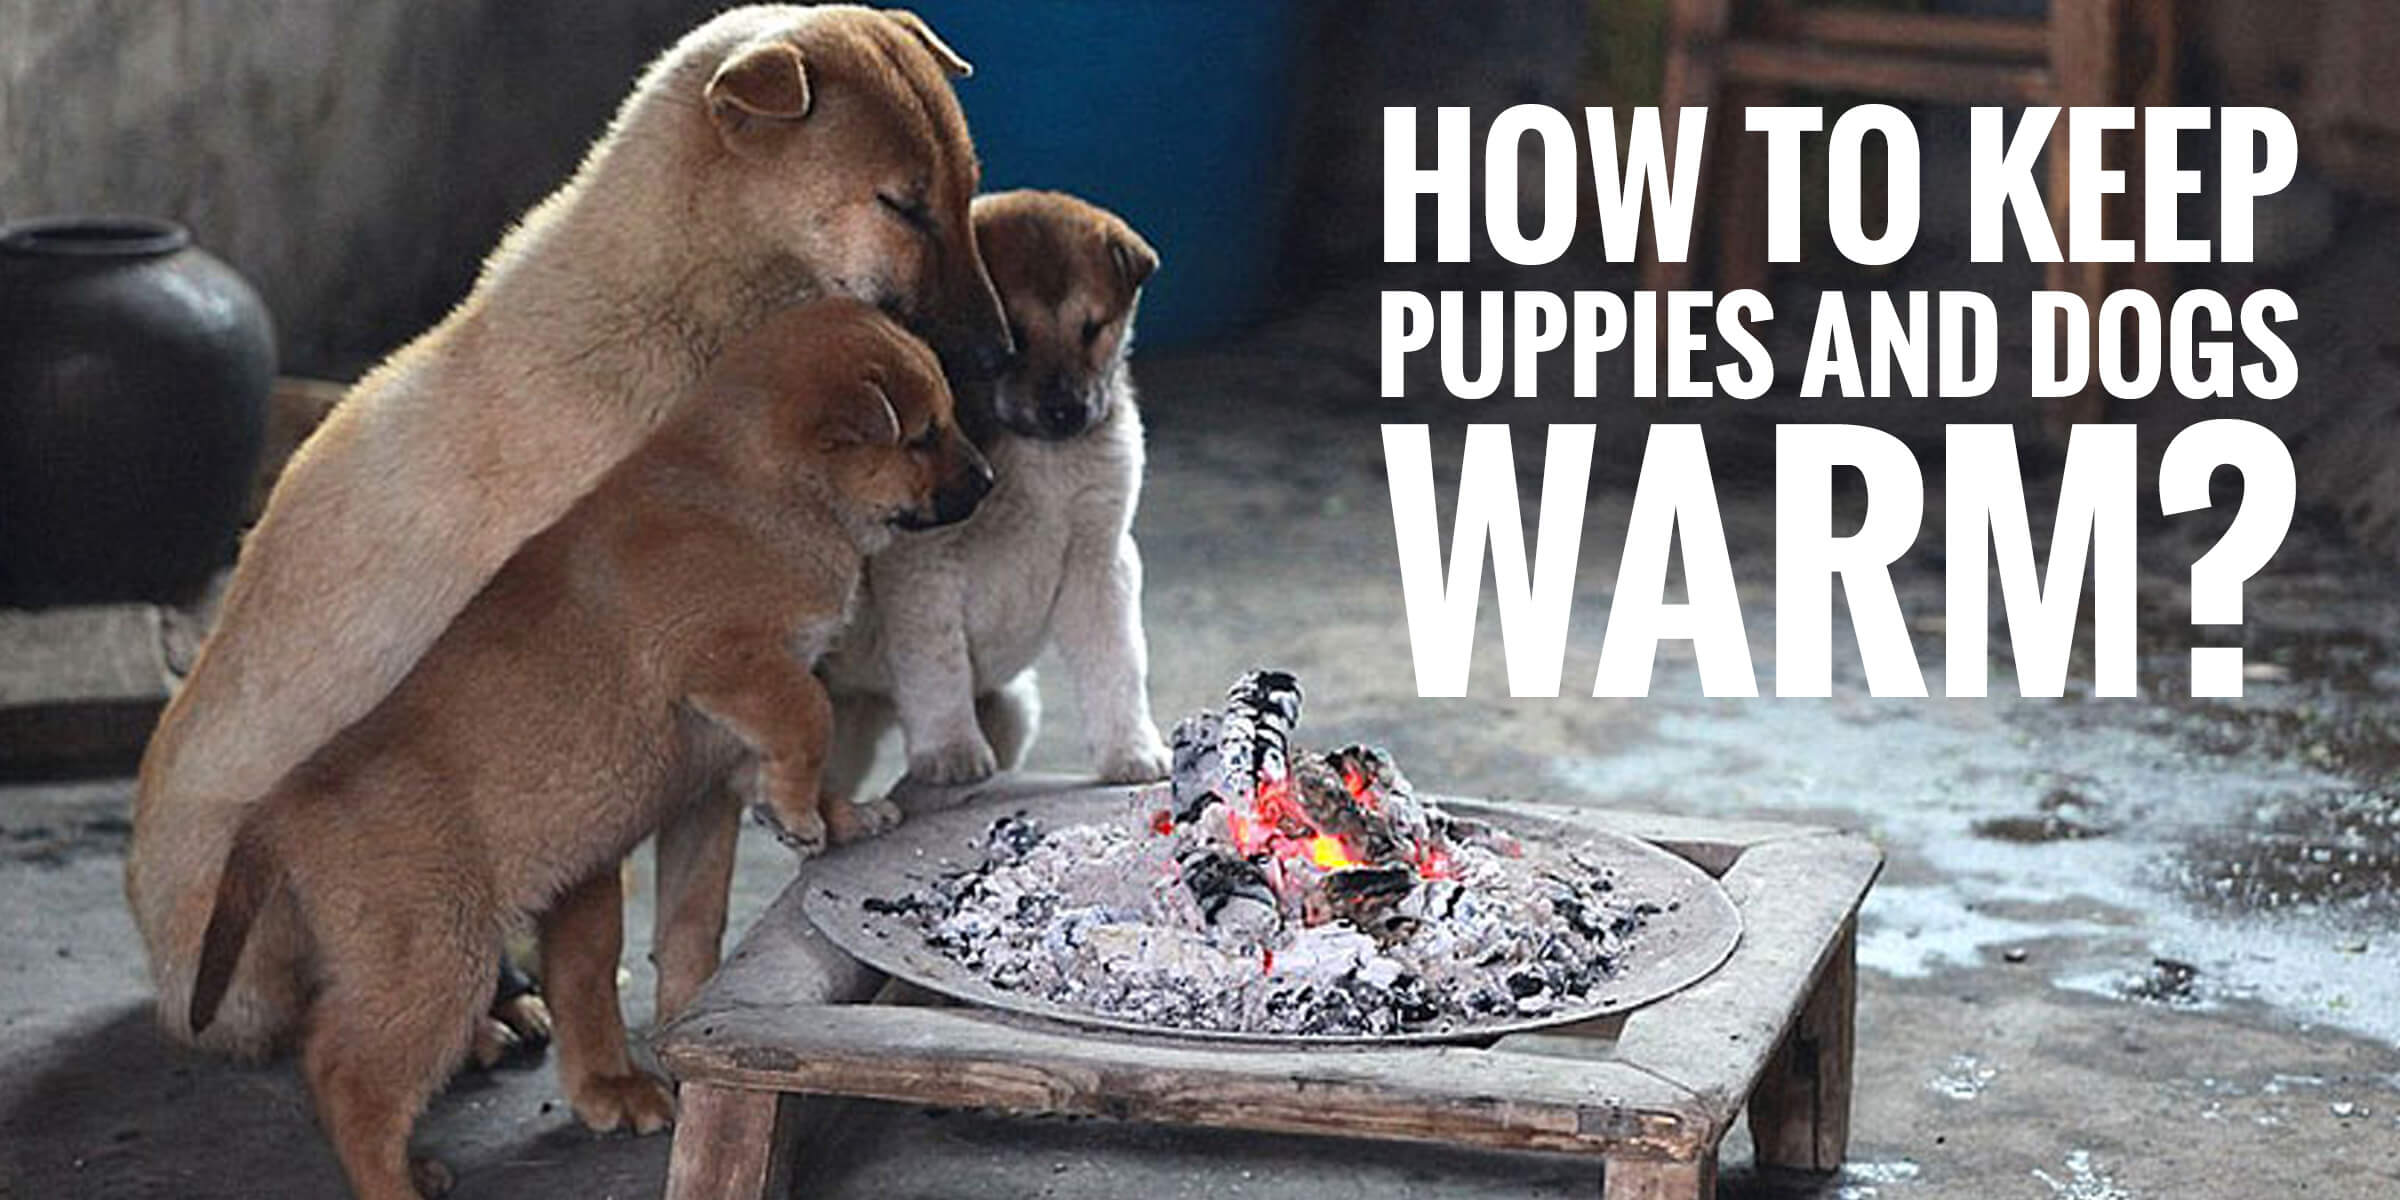 How To Keep Puppies and Dogs Warm?